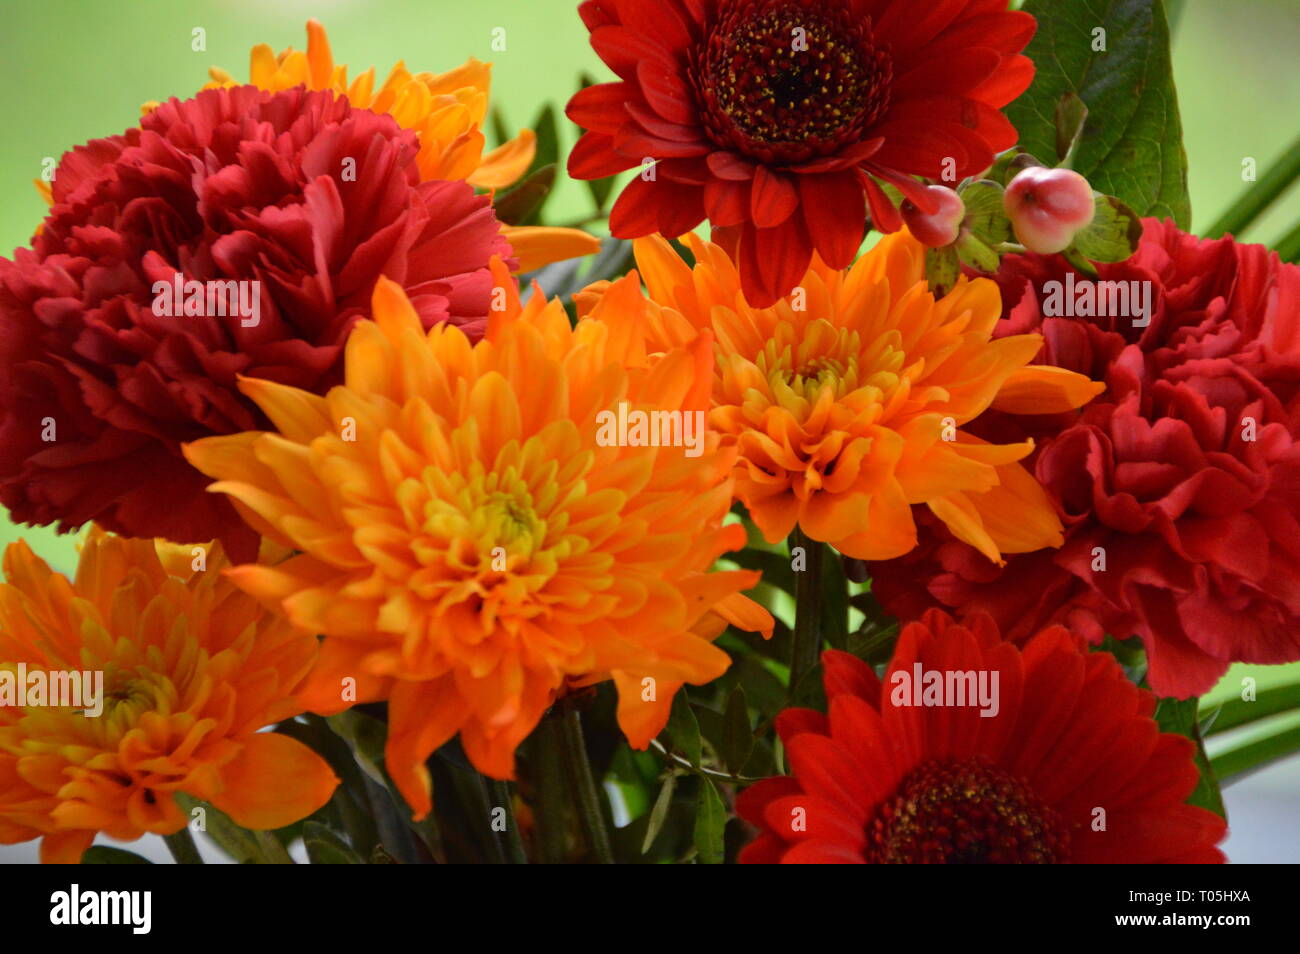 Flowers except one butterfly - Stock Image